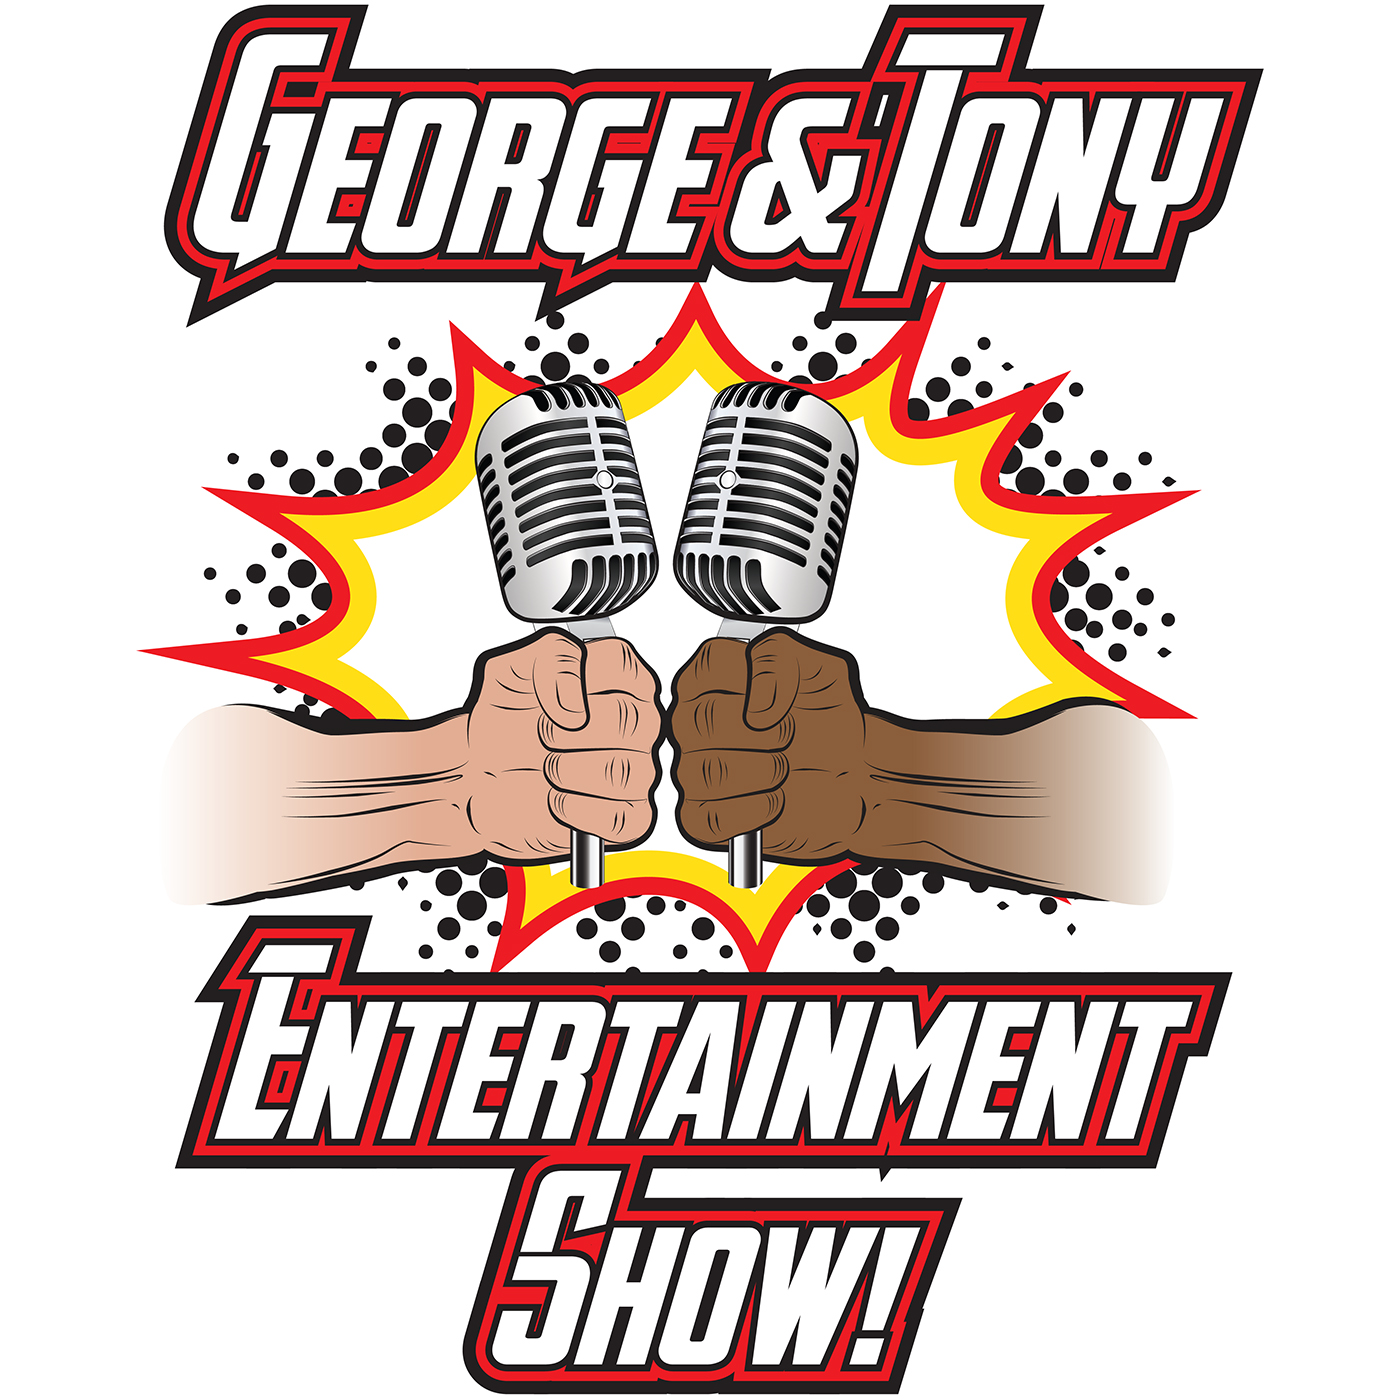 George and Tony Entertainment Show #150